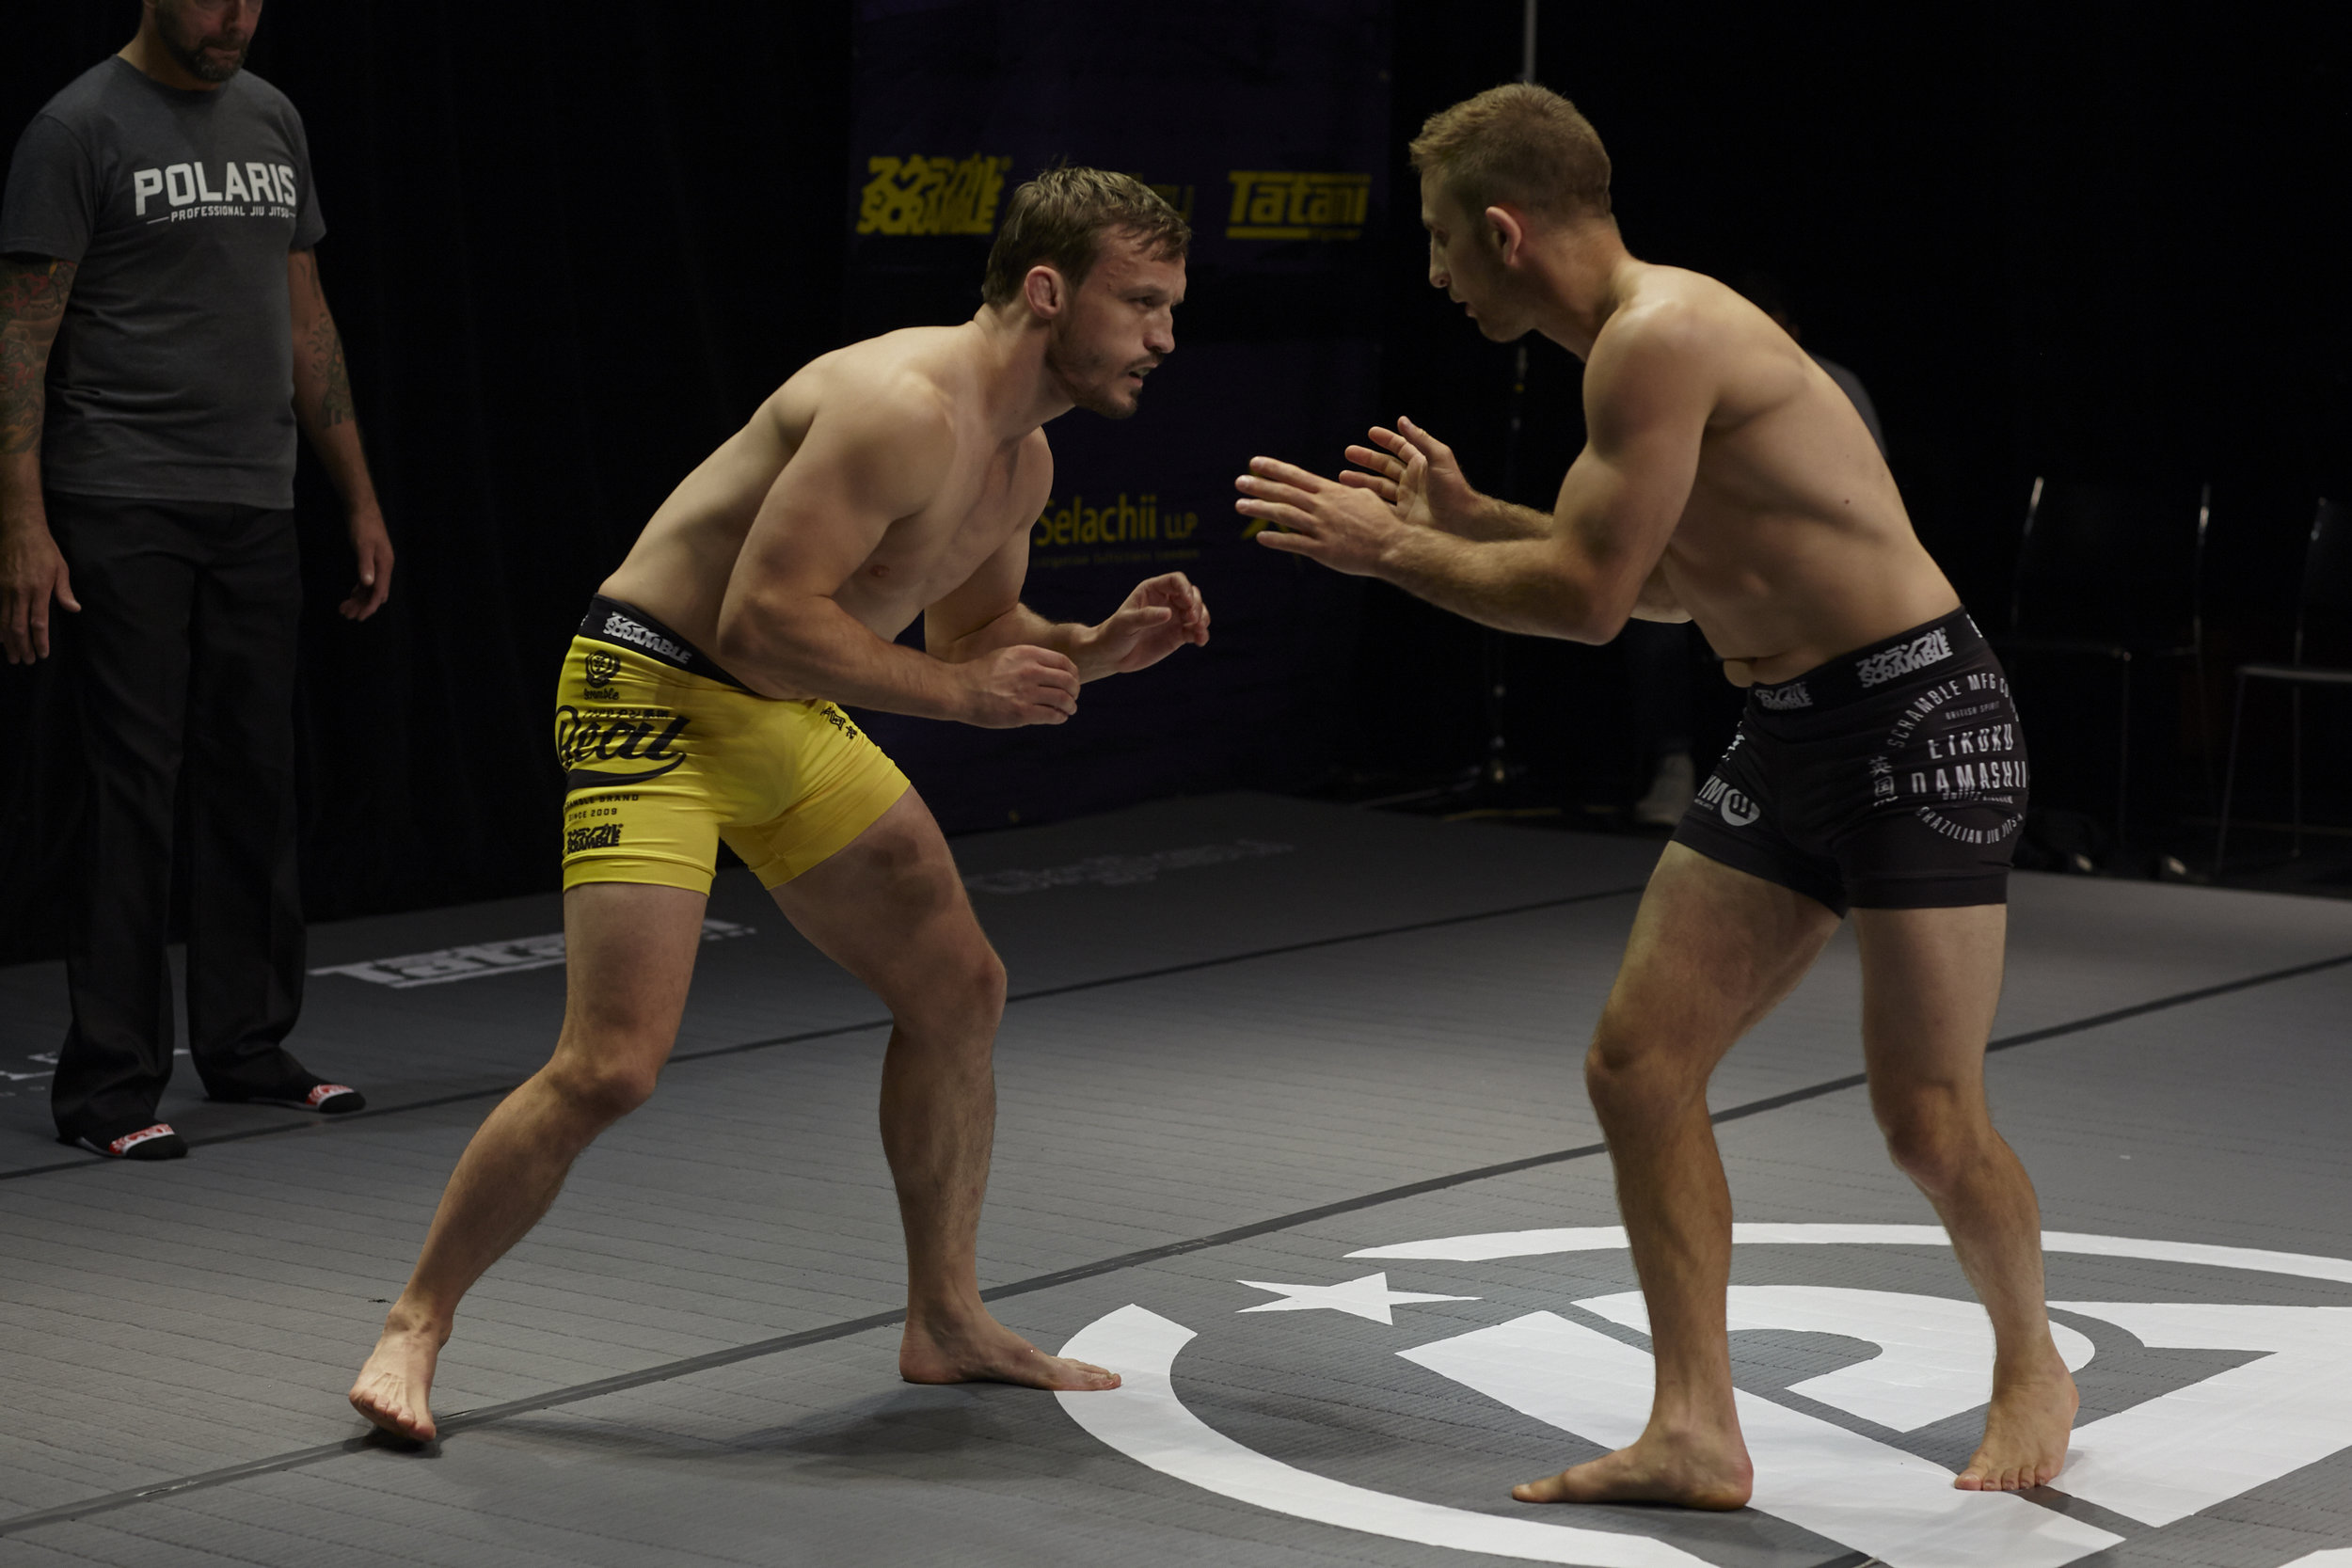 """Old school style – 'One Punch'  Brad Pickett  back in the game already, taking on fellow British UFC veteran Phil Harris. """"I wanted to punch him so bad,"""" said Pickett after losing by split decision.  All photos by Andrew Jackson unless credited otherwise."""